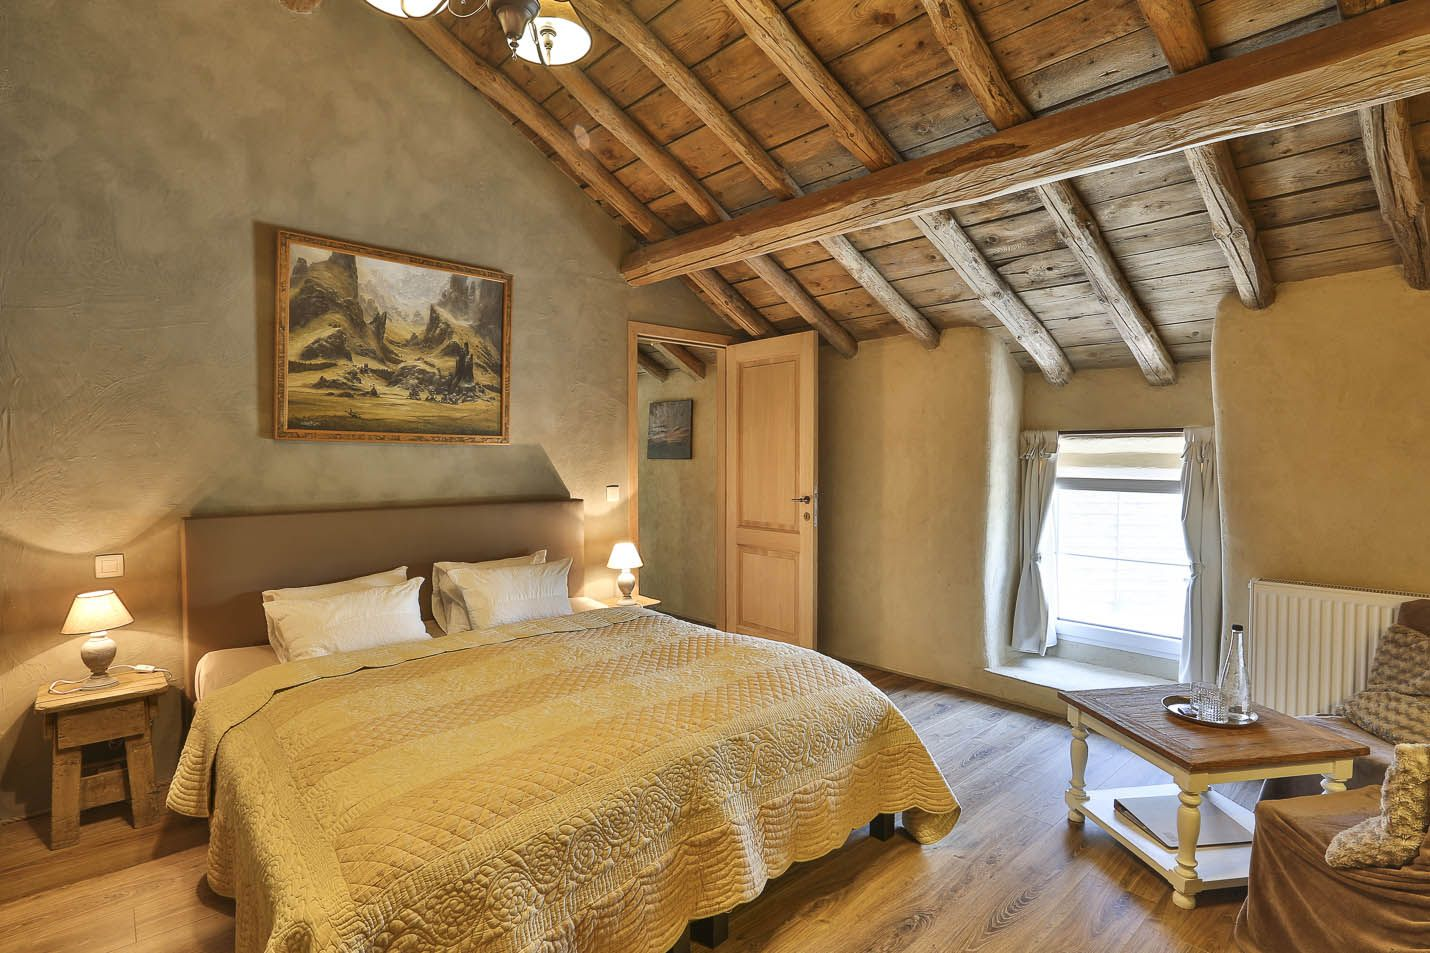 Holiday cottage Ardennes 4 pers. St Vith Wellness 10606601